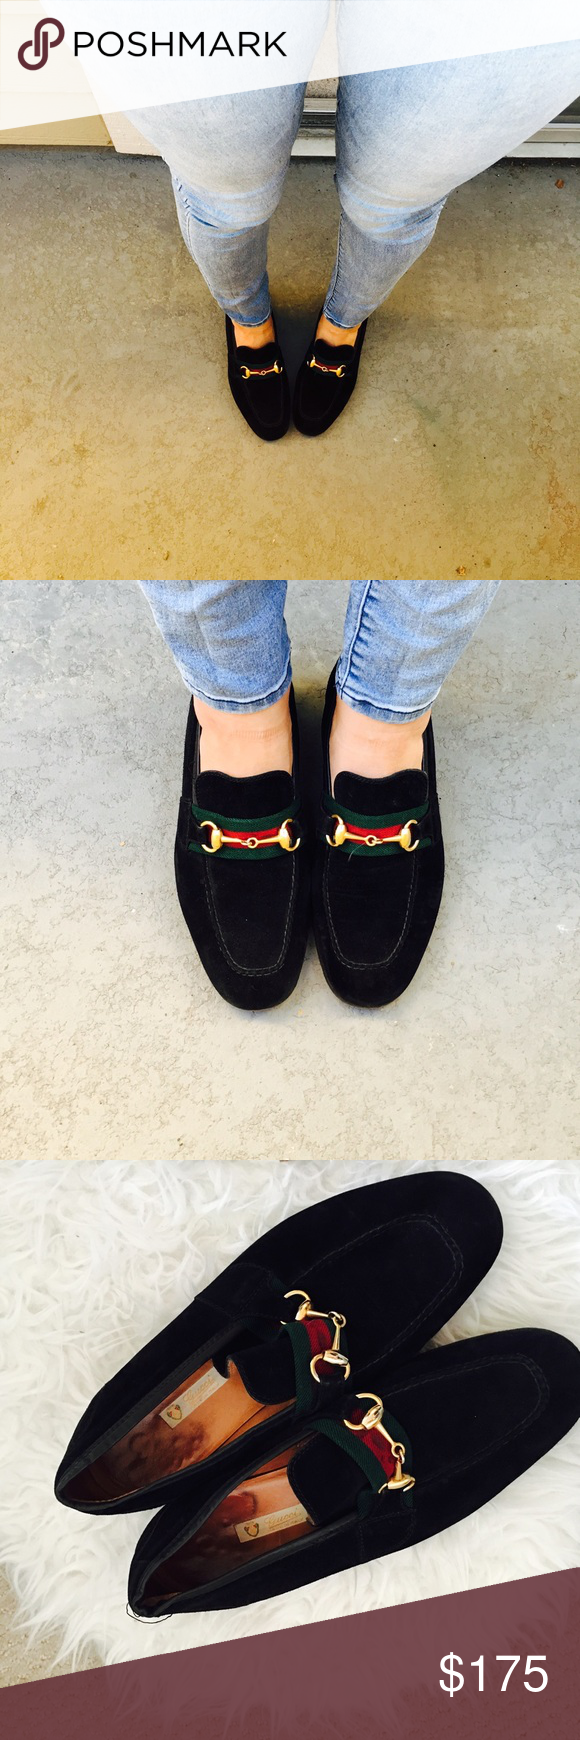 f274acacebf Vintage Gucci Horsebit Loafers Black suede loafers with original horesbit  hardware . Size 41 mens will fit a women s 9.5 10. In excellent condition .